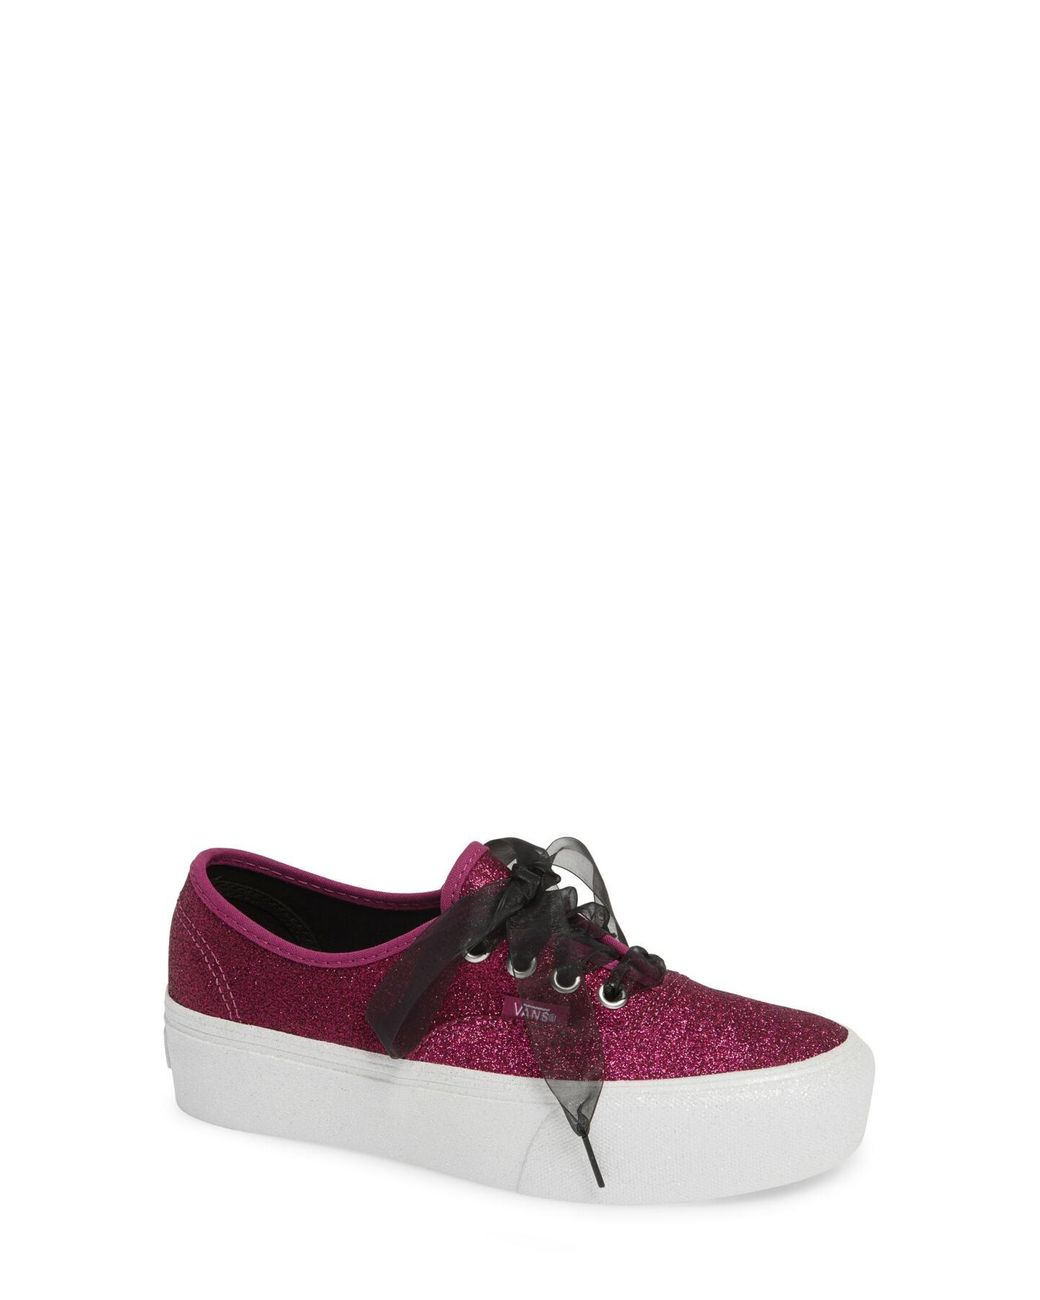 b5e7921b6b Lyst - Vans Glitter Authentic Platform 2.0 Womens Shoes in Pink ...